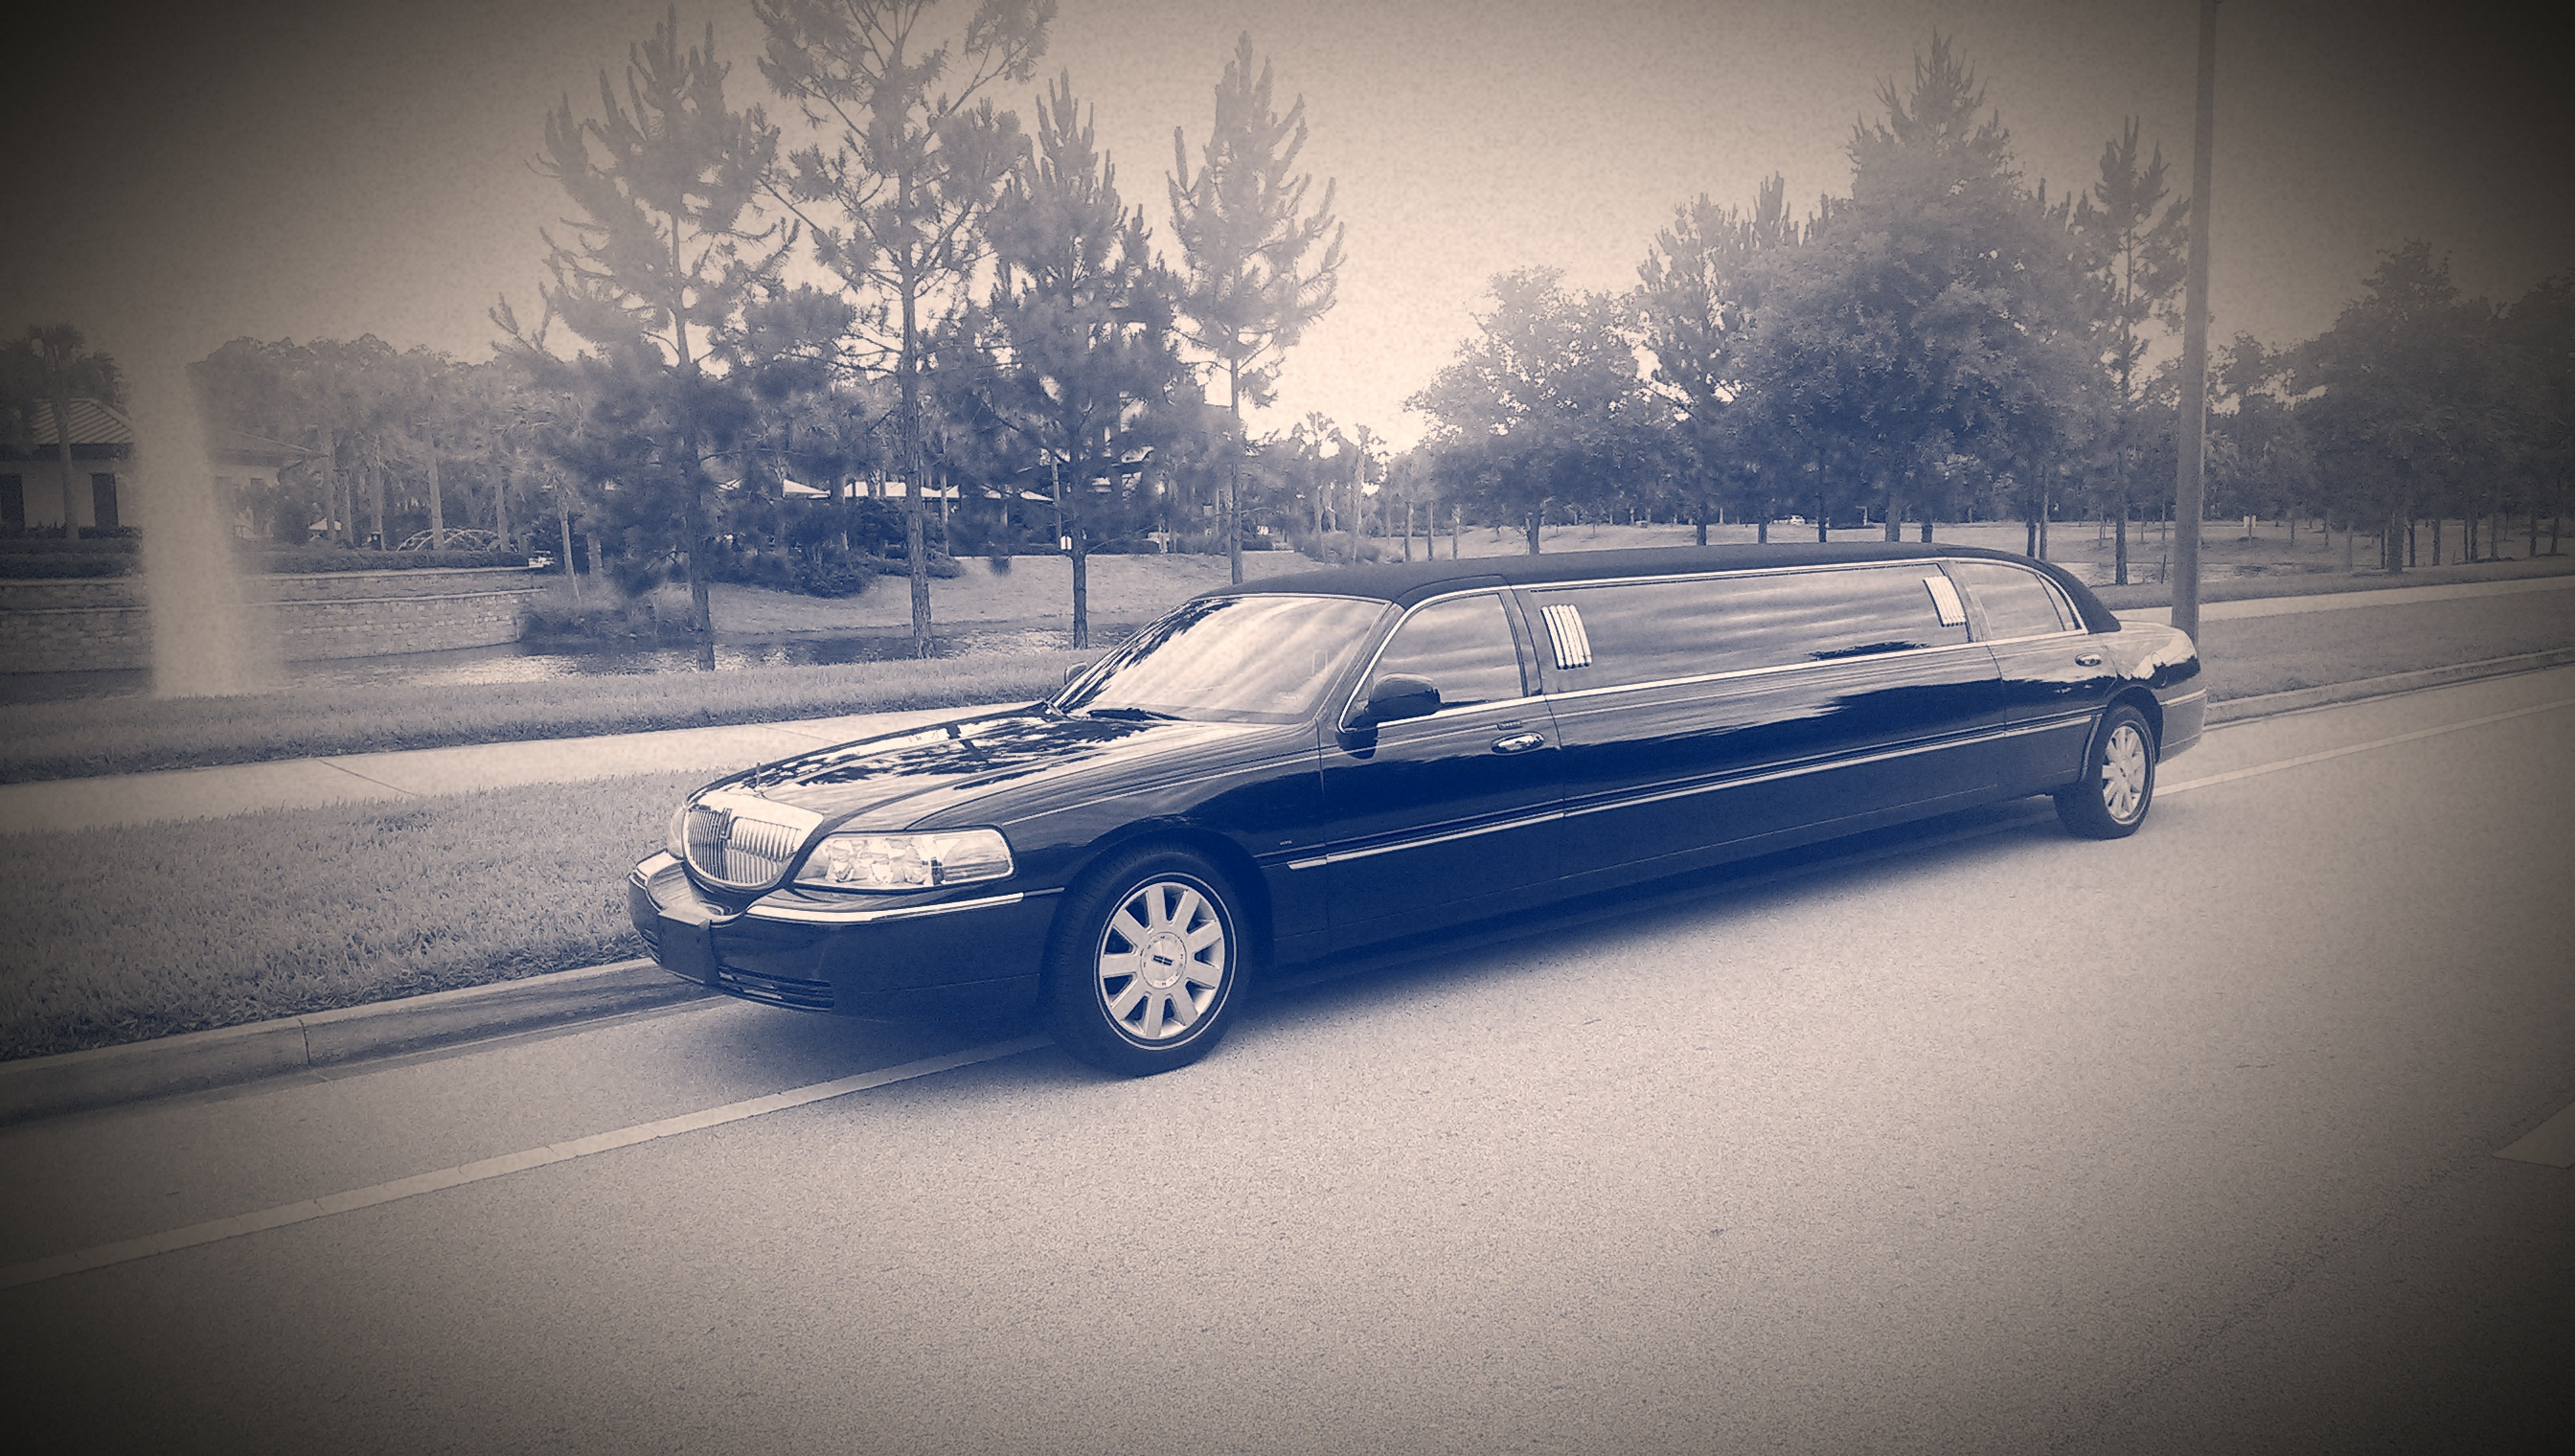 Lincoln Limo - River City Limos